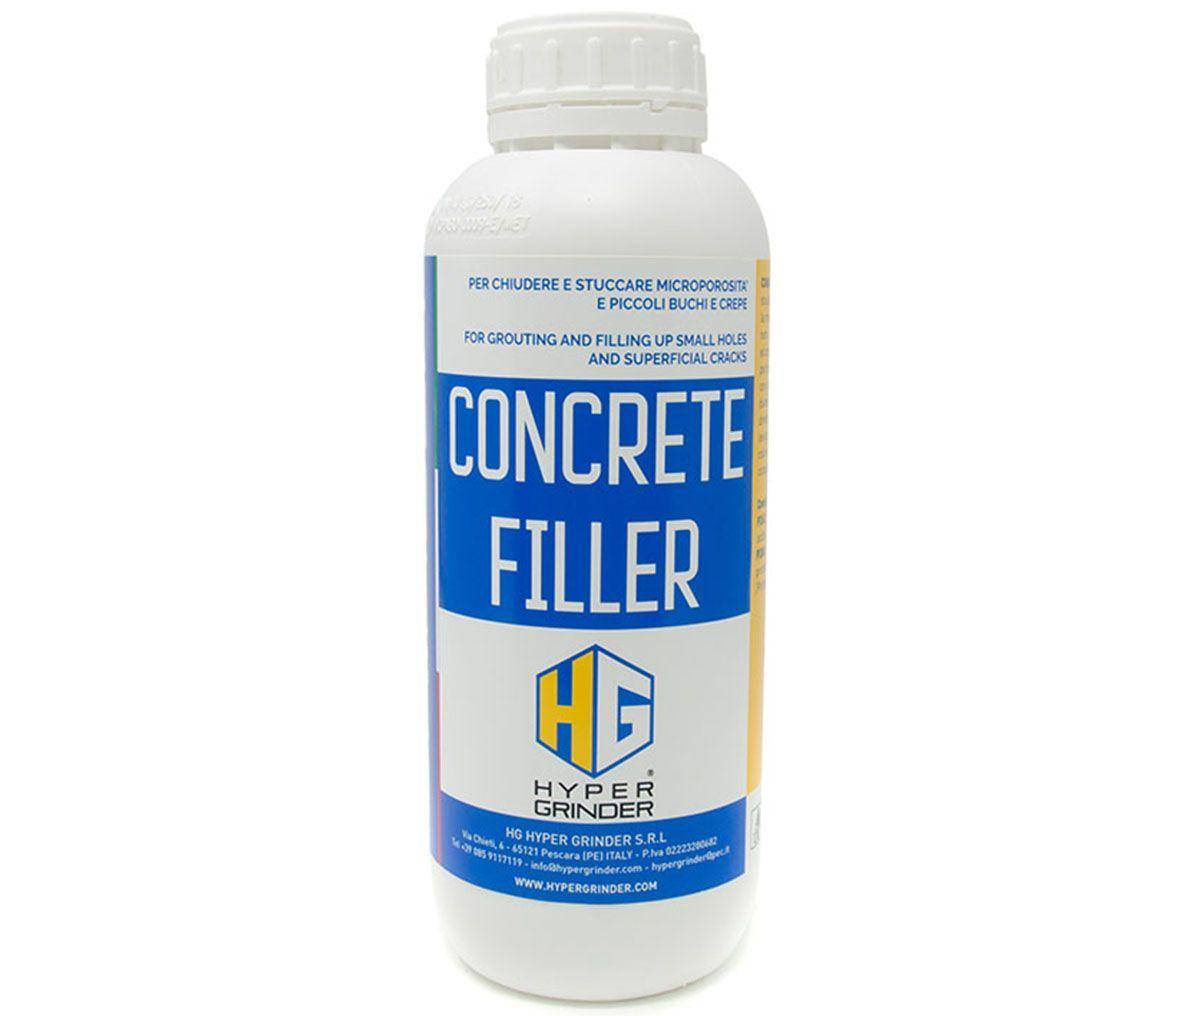 concrete filler 1429